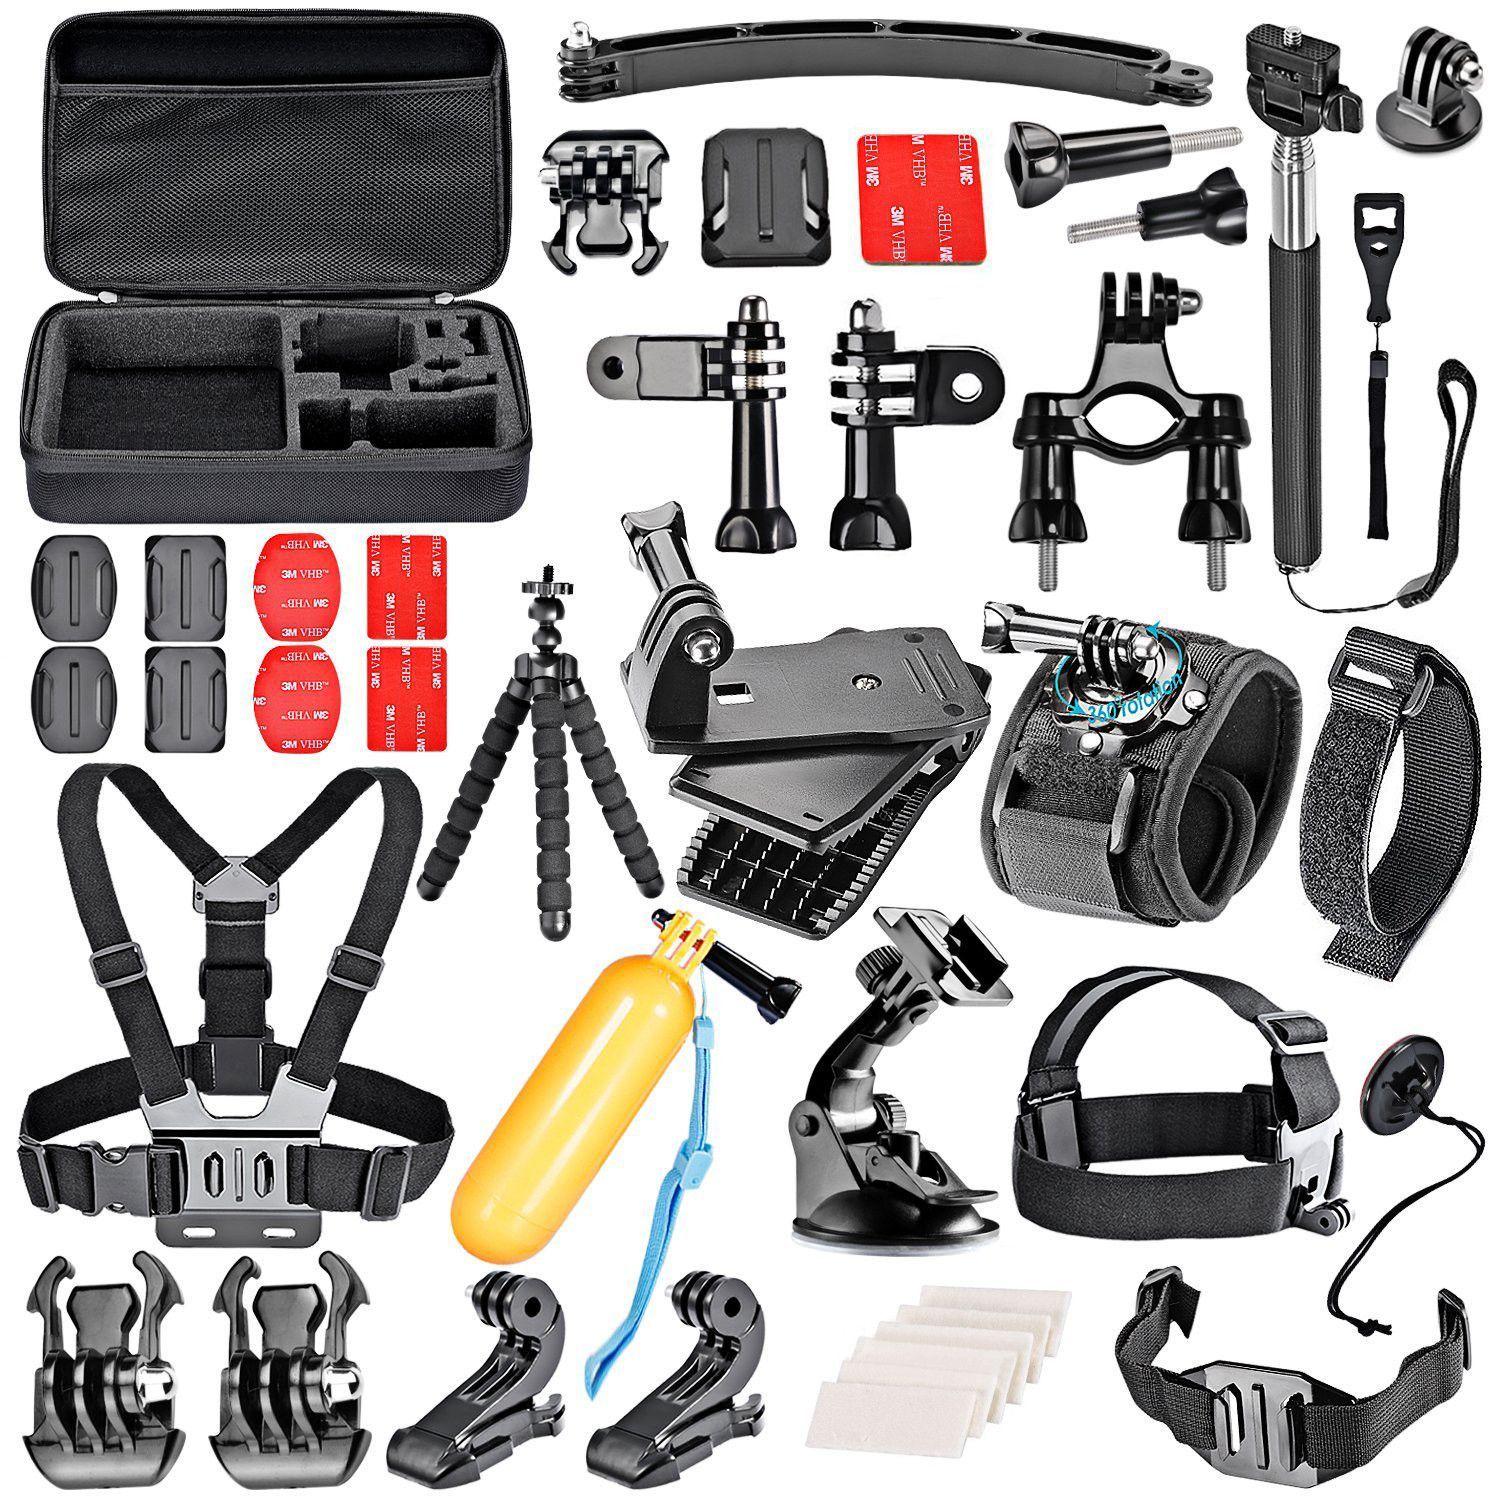 Neewer Sport Accessory Kit for GoPro Session 2 3 4 5000 6000 7000 Xiaomi Yi in Swimming Rowing Skiing Climbing Bike Riding Camping Diving and Other Outdoor